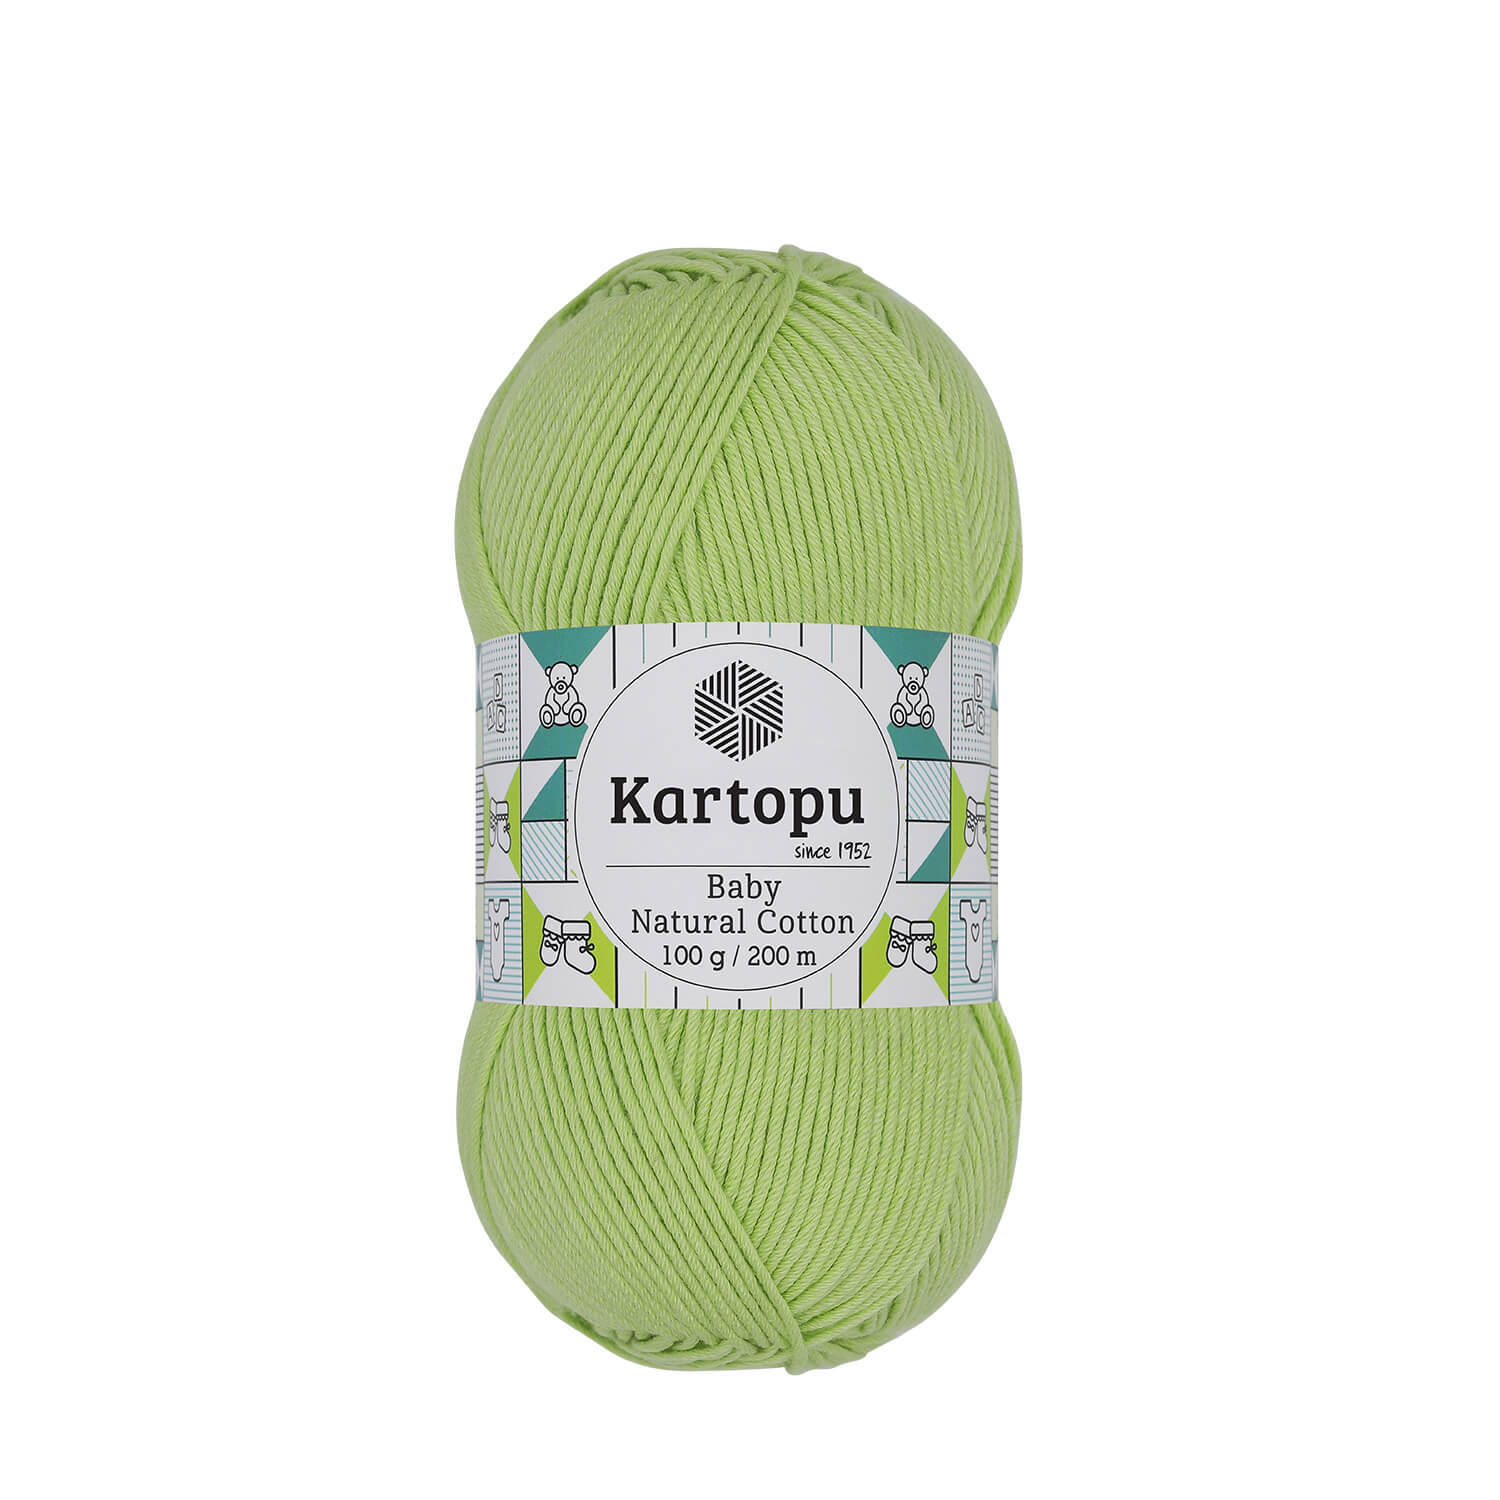 Baby Natural Cotton K389